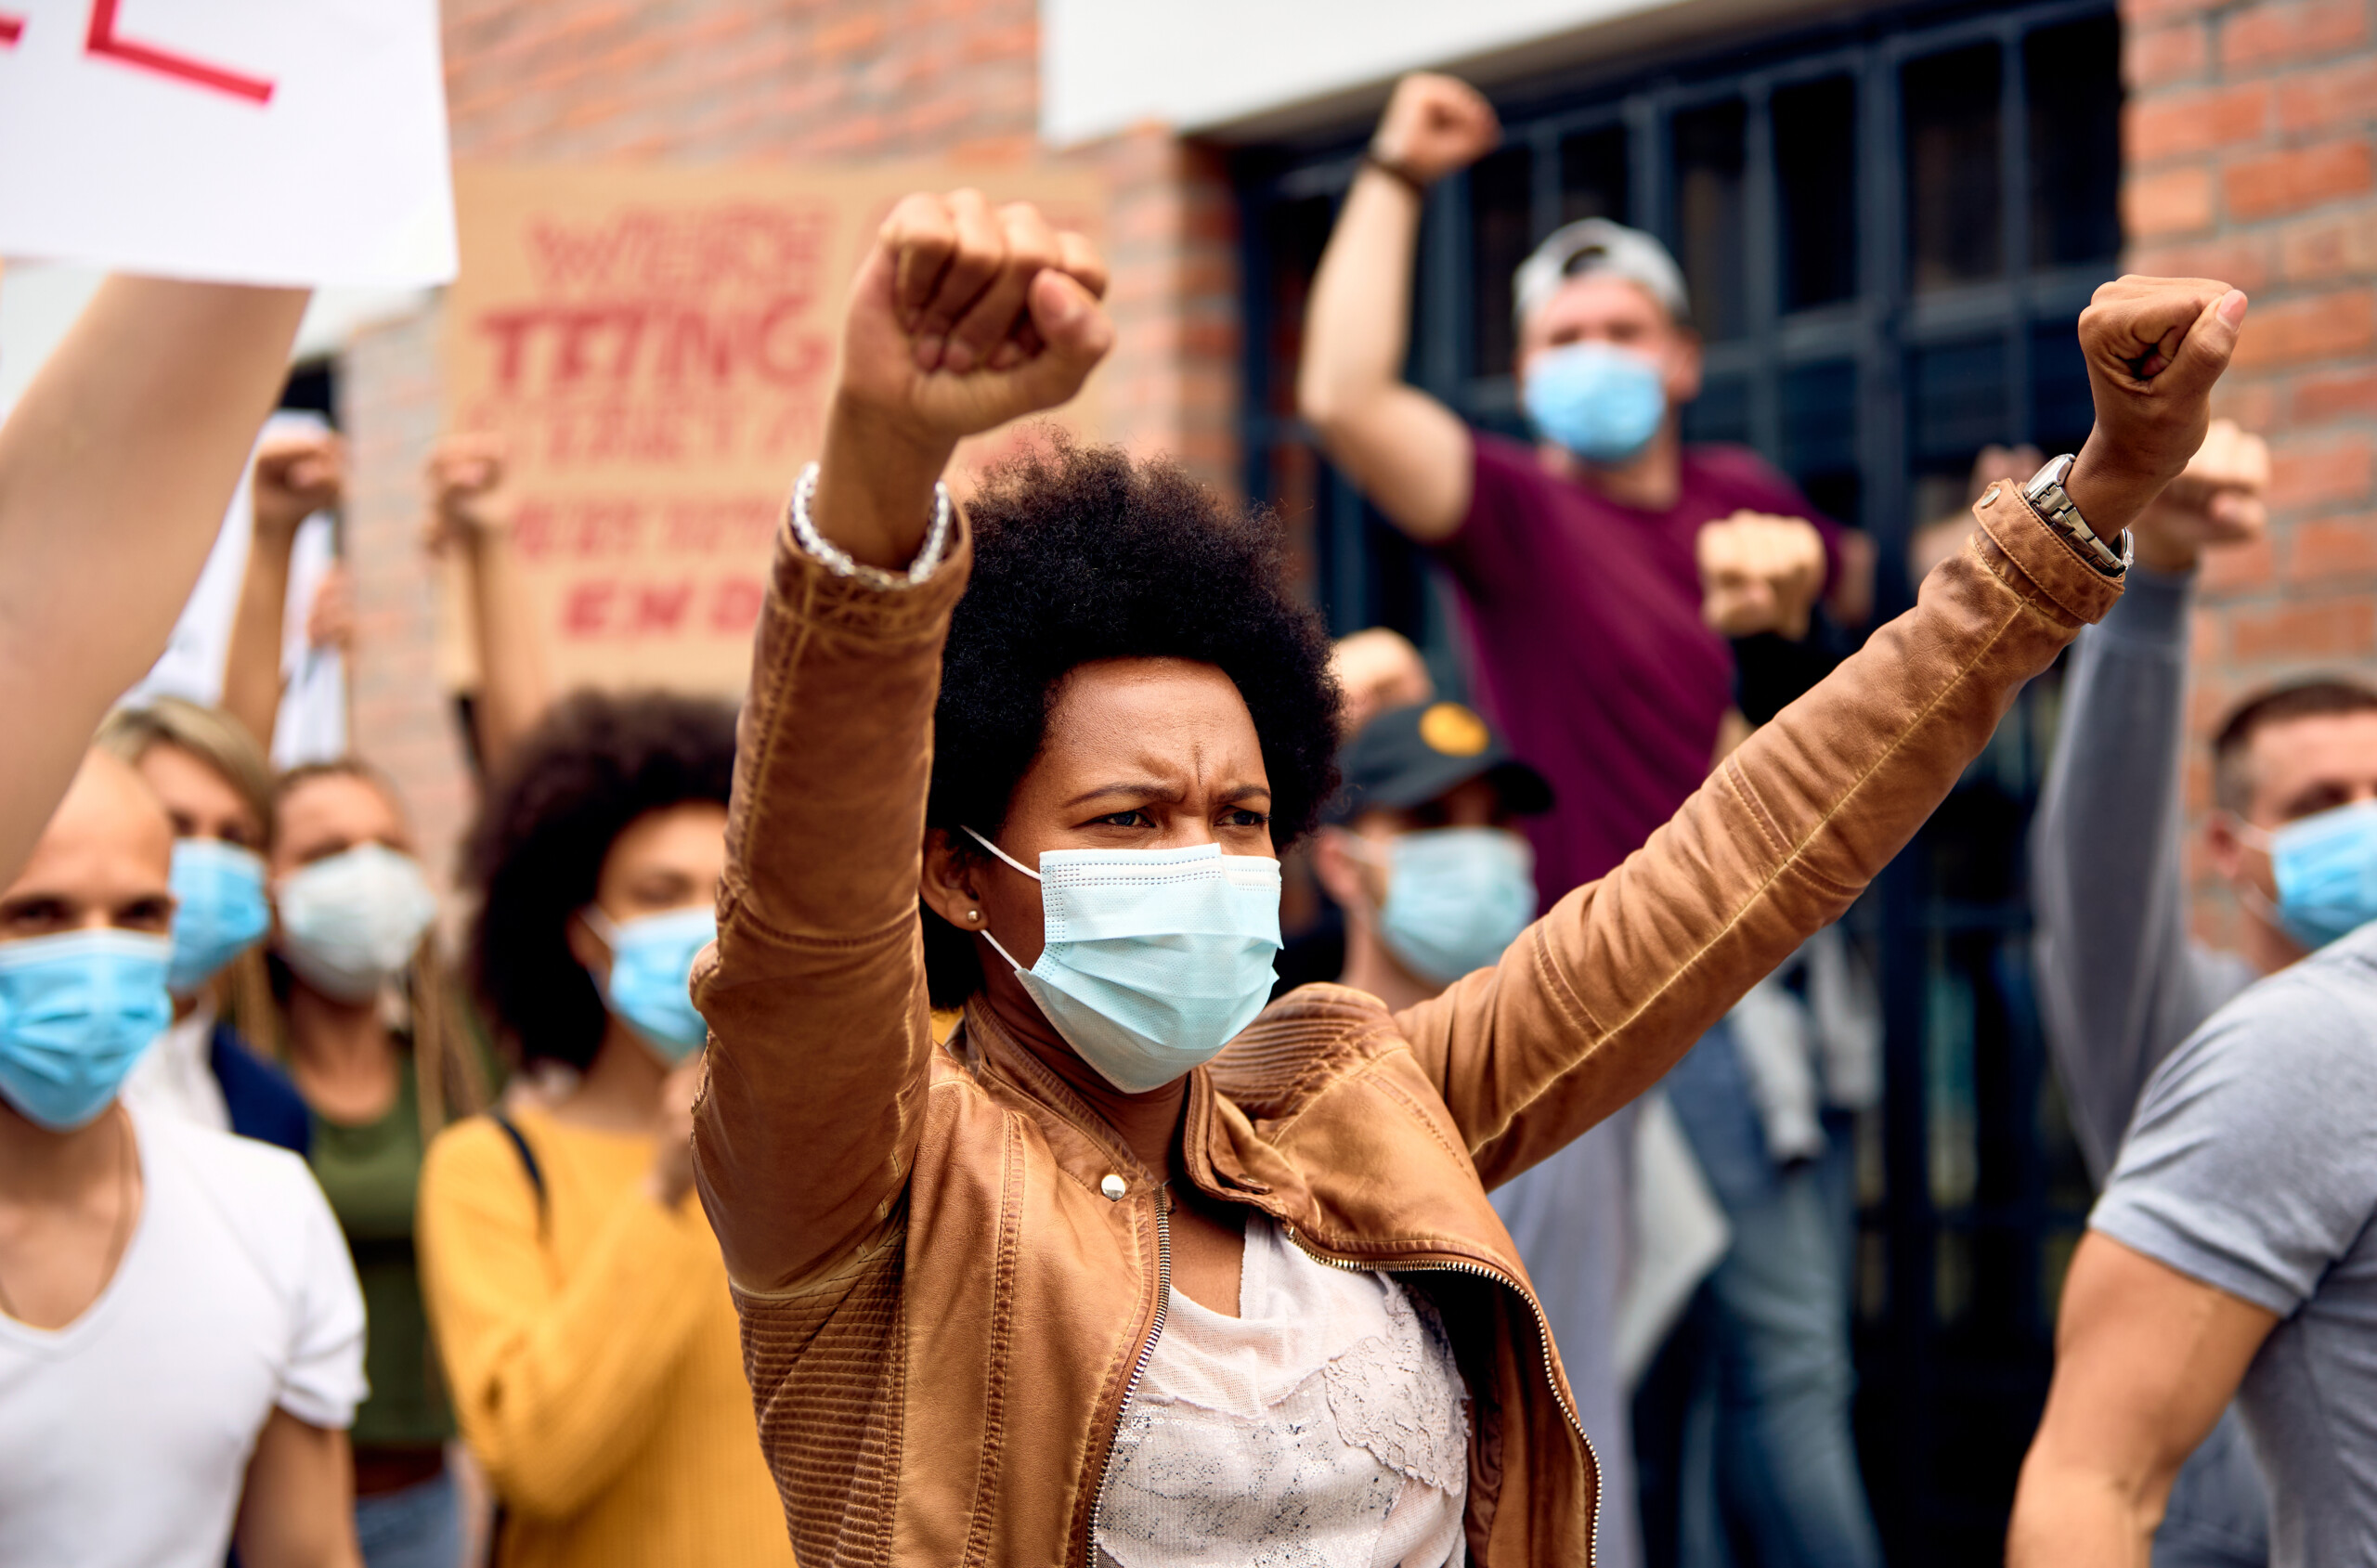 Black woman with raised fists wearing protective face mask while supporting anti-racism demonstrations.